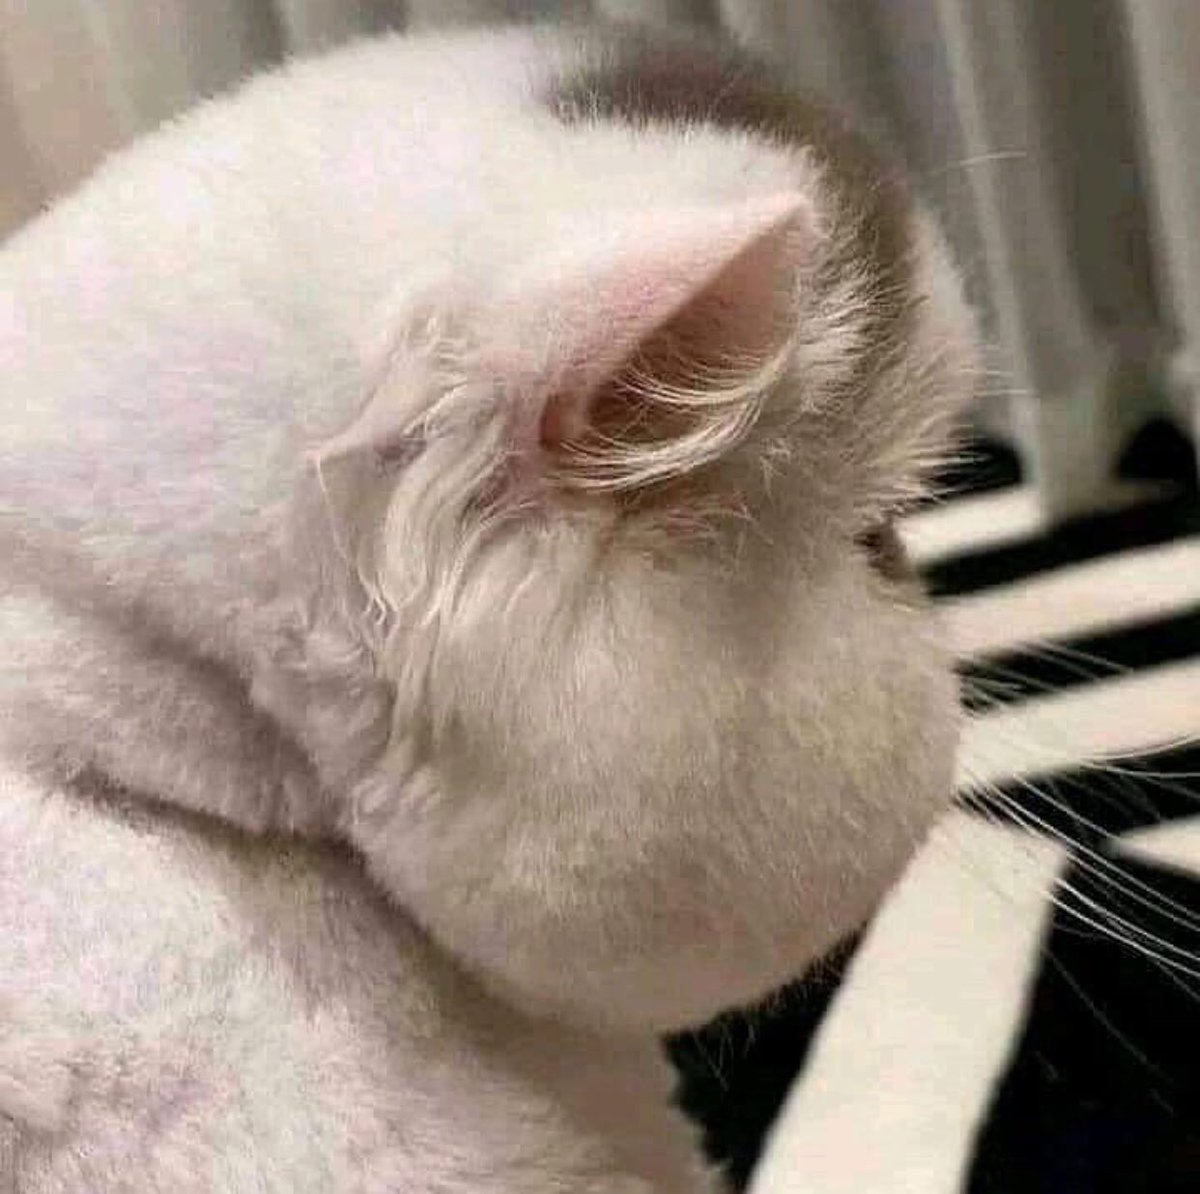 Replying to @M0NEULI: this is hyungwon                    this is cat